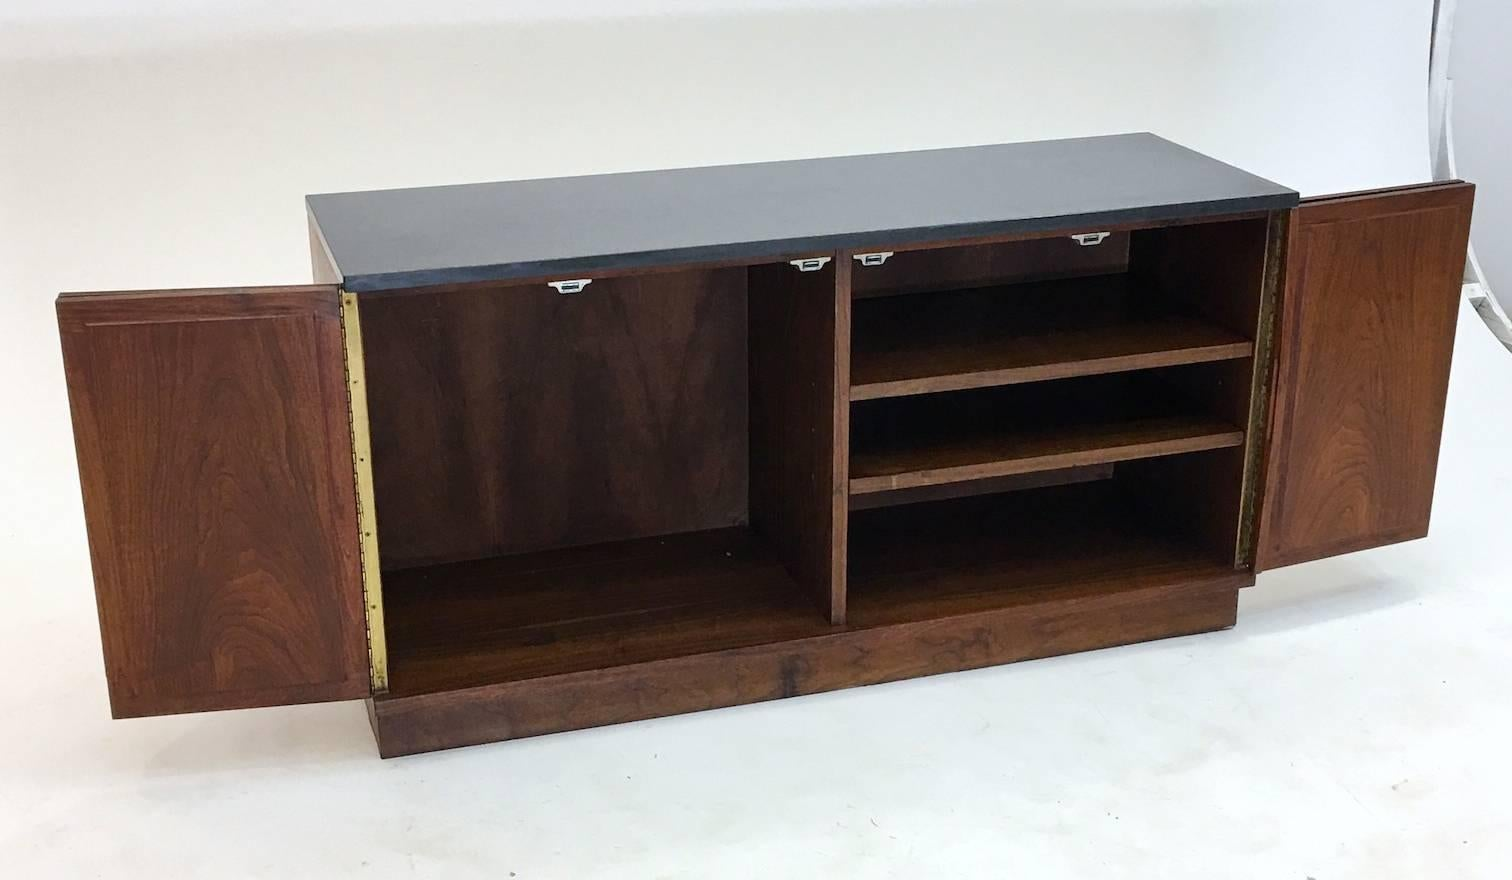 Diminutive Slate and Walnut Console Cabinet with Low